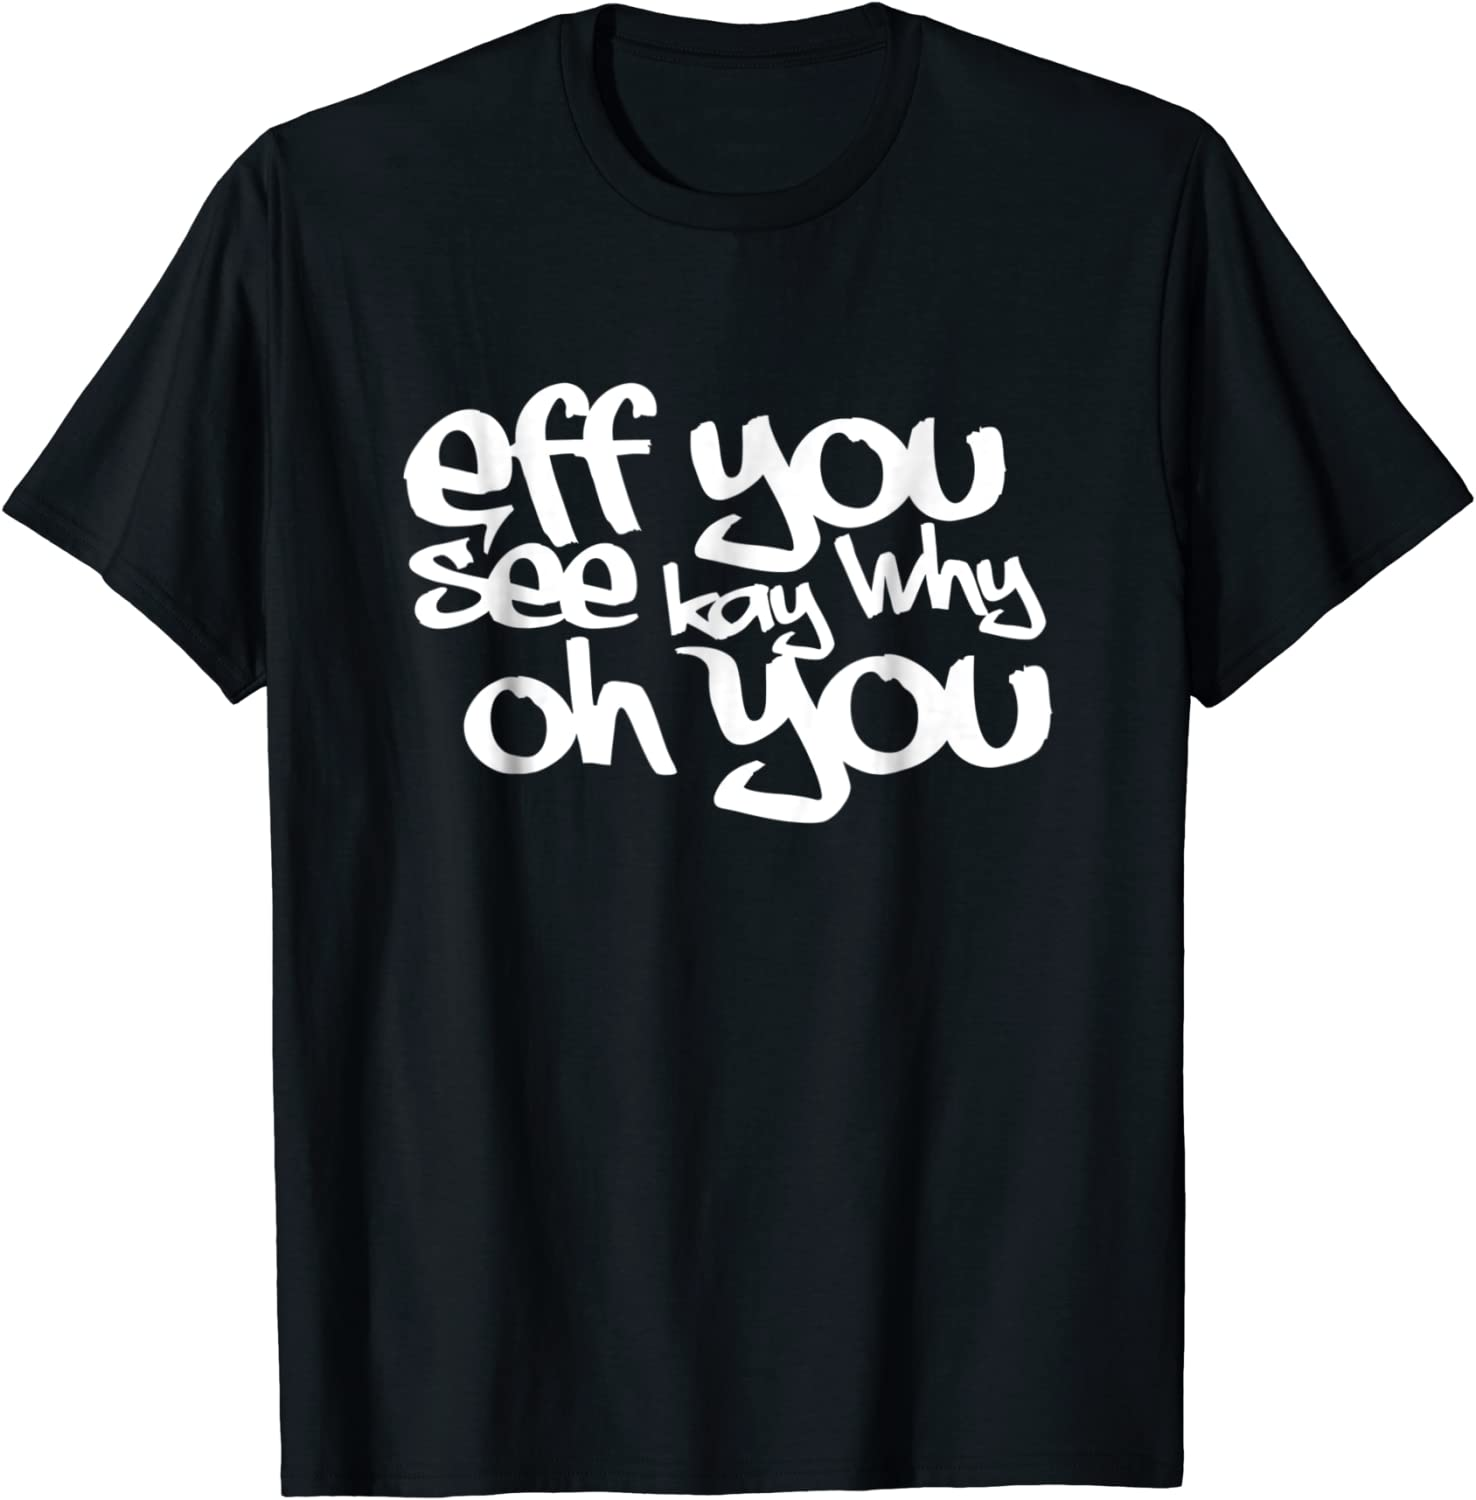 Retro Vintage Eff You See Kay Why Oh You T-shirt Funny Sloth T-shirt